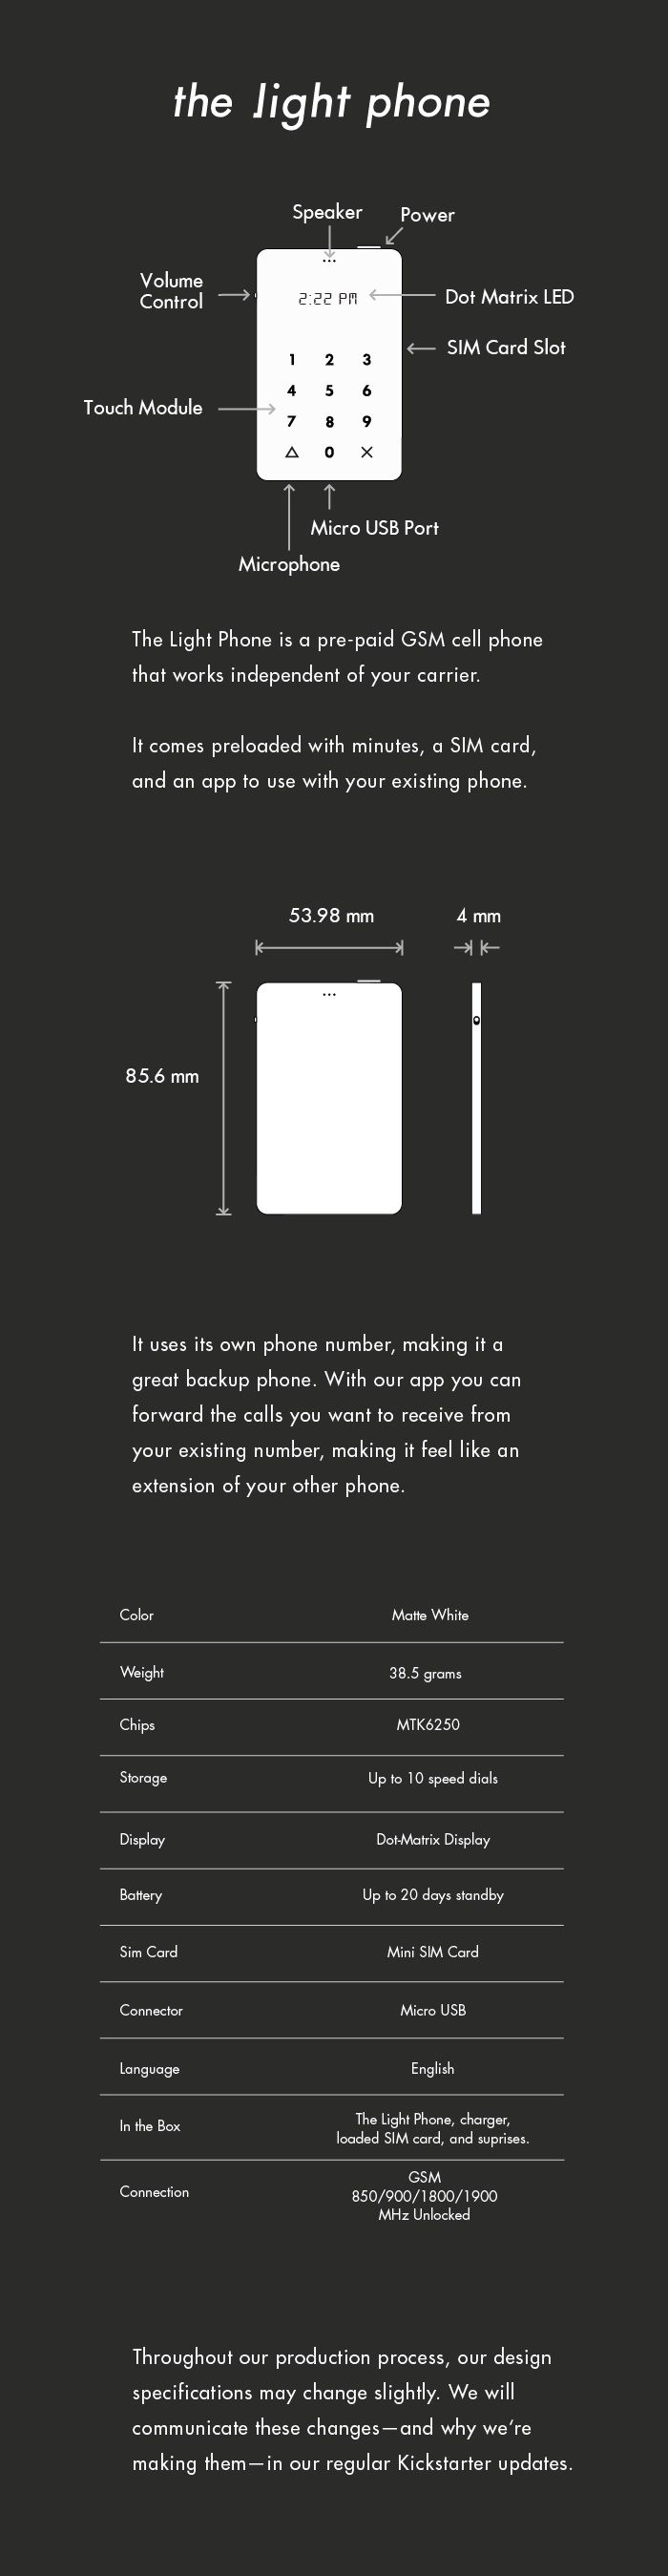 Light Phone infographie